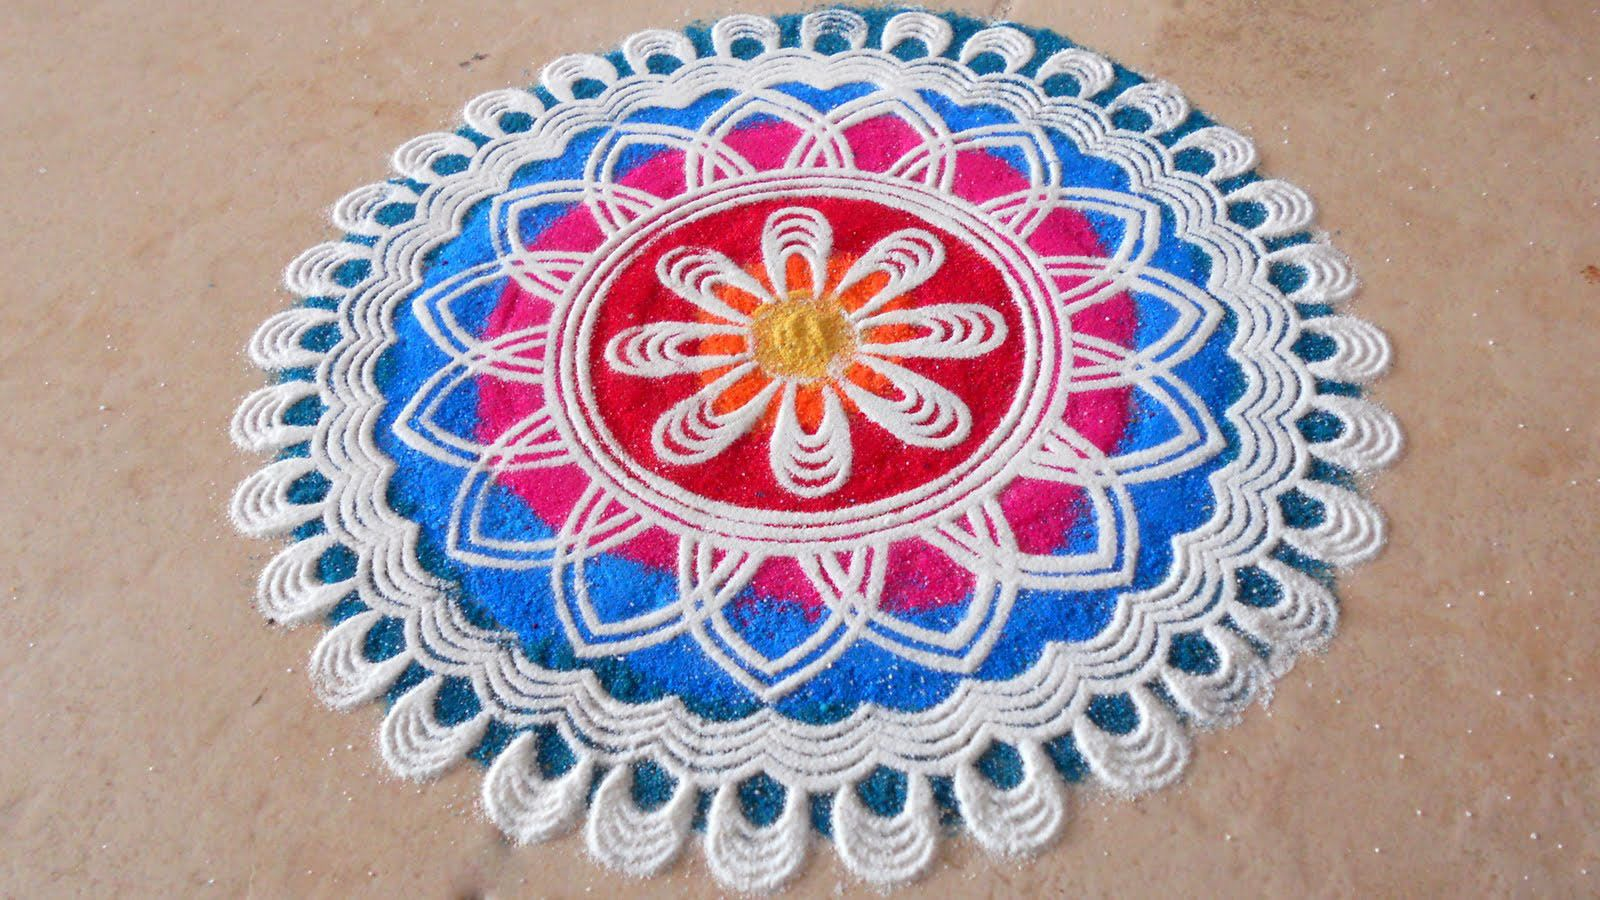 The purpose of rangoli is decoration, and it is thought to